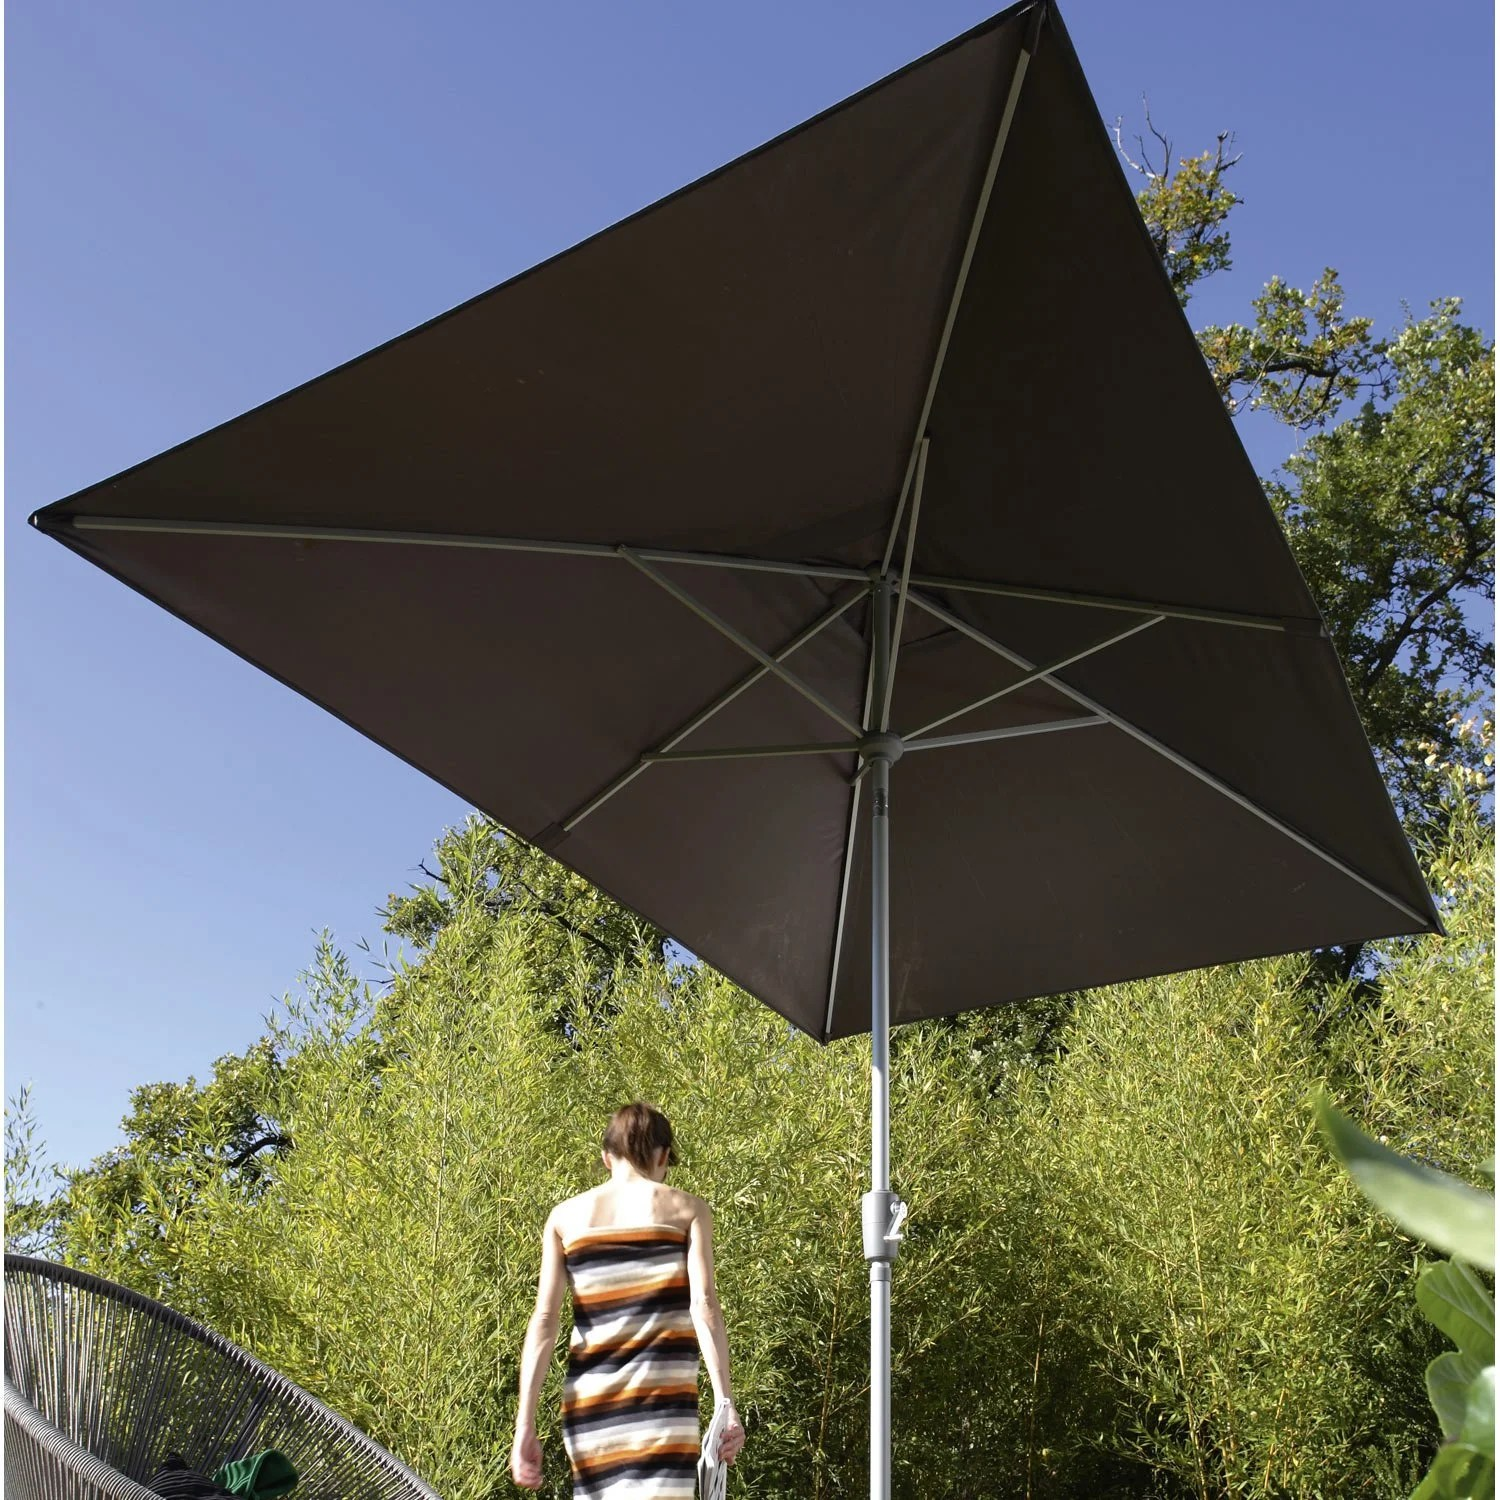 Parasols Leroy Merlin Parasol Rectangulaire Inclinable Leroy Merlin